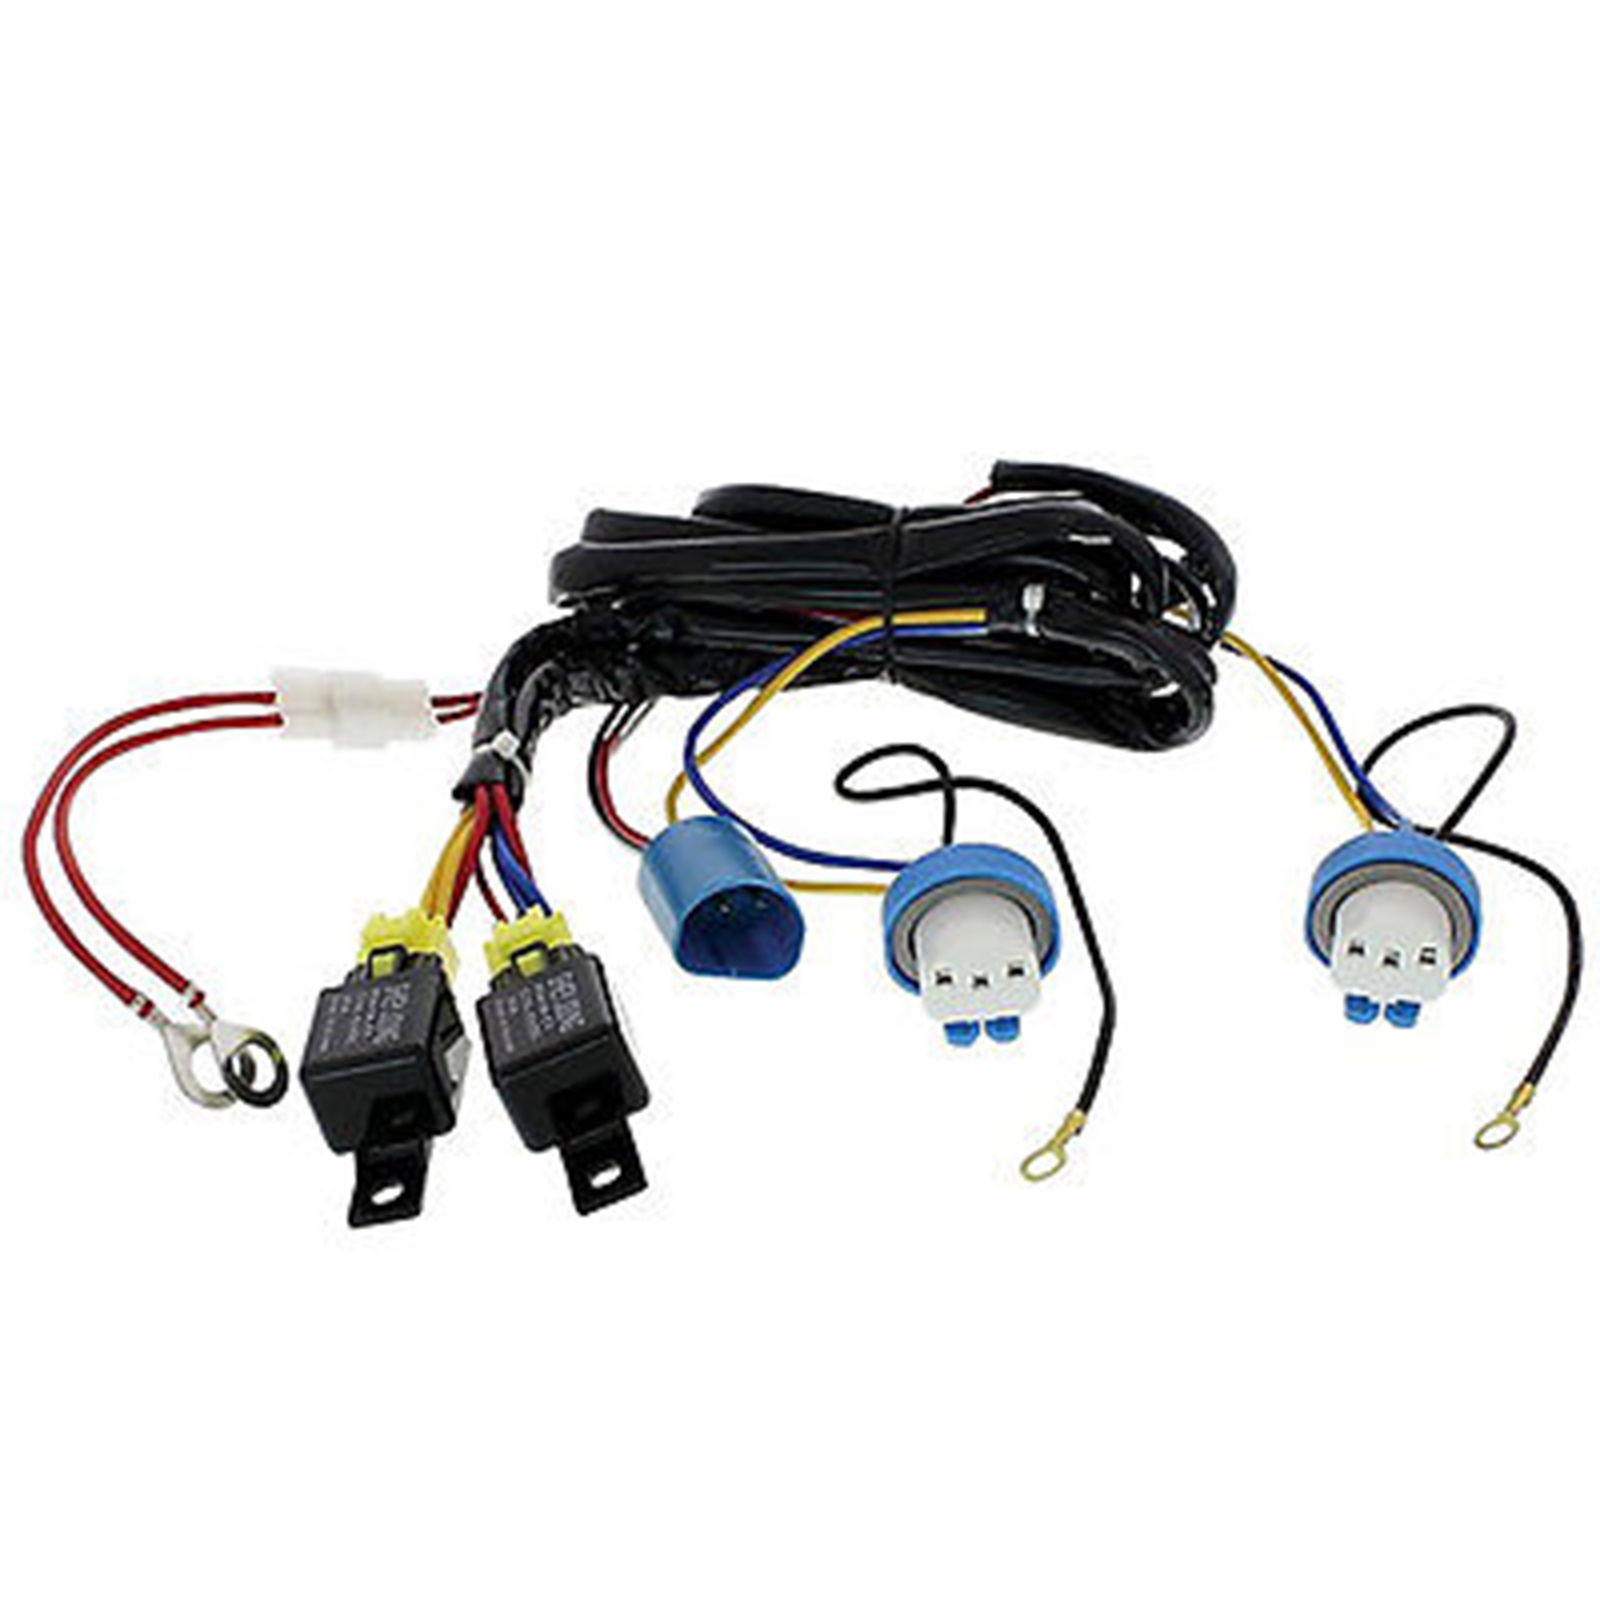 12v Headlight Relay Wiring | Wiring Diagram on 12 volt alternator wiring diagram, 12 volt flasher wiring-diagram, 12vdc dpdt relays wiring diagrams, hvac relay diagrams, 12 volt relay operation, basic 12 volt wiring diagrams, 12 volt 5 pin relay diagram, 12 volt conversion wiring diagram, 12 volt reverse polarity relay, 12 volt car relays, 12 volt reversing solenoid winch, 12 volt led lights, 12 volt time delay relay, 12 volt sockets and bulbs, 12 volt relay specs, 12 volt to 240 volt relay, 12 volt ac relays, 12 volt wiring for a building, 12 volt relay block, 12 volt latching relay diagram,